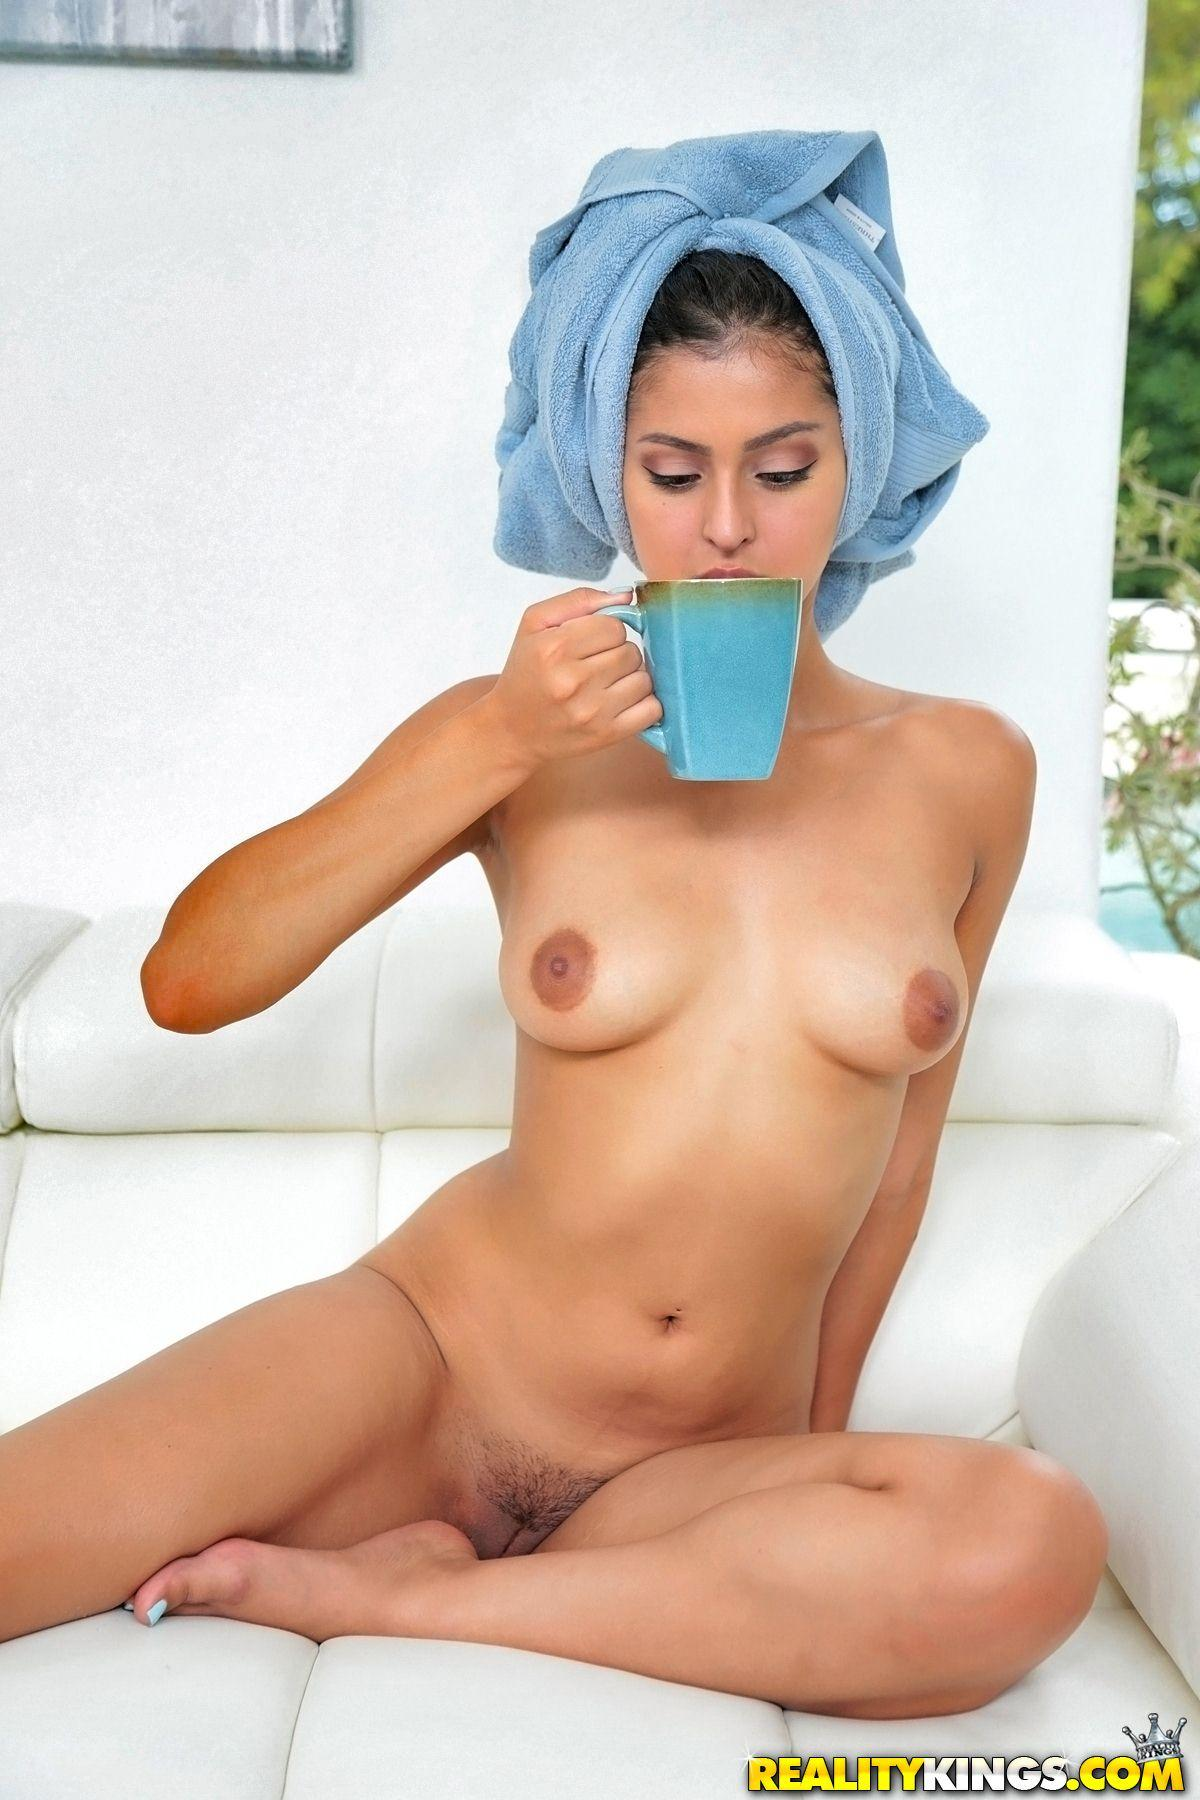 Latina coed sophia is fucking her pussy with a new dildo 3